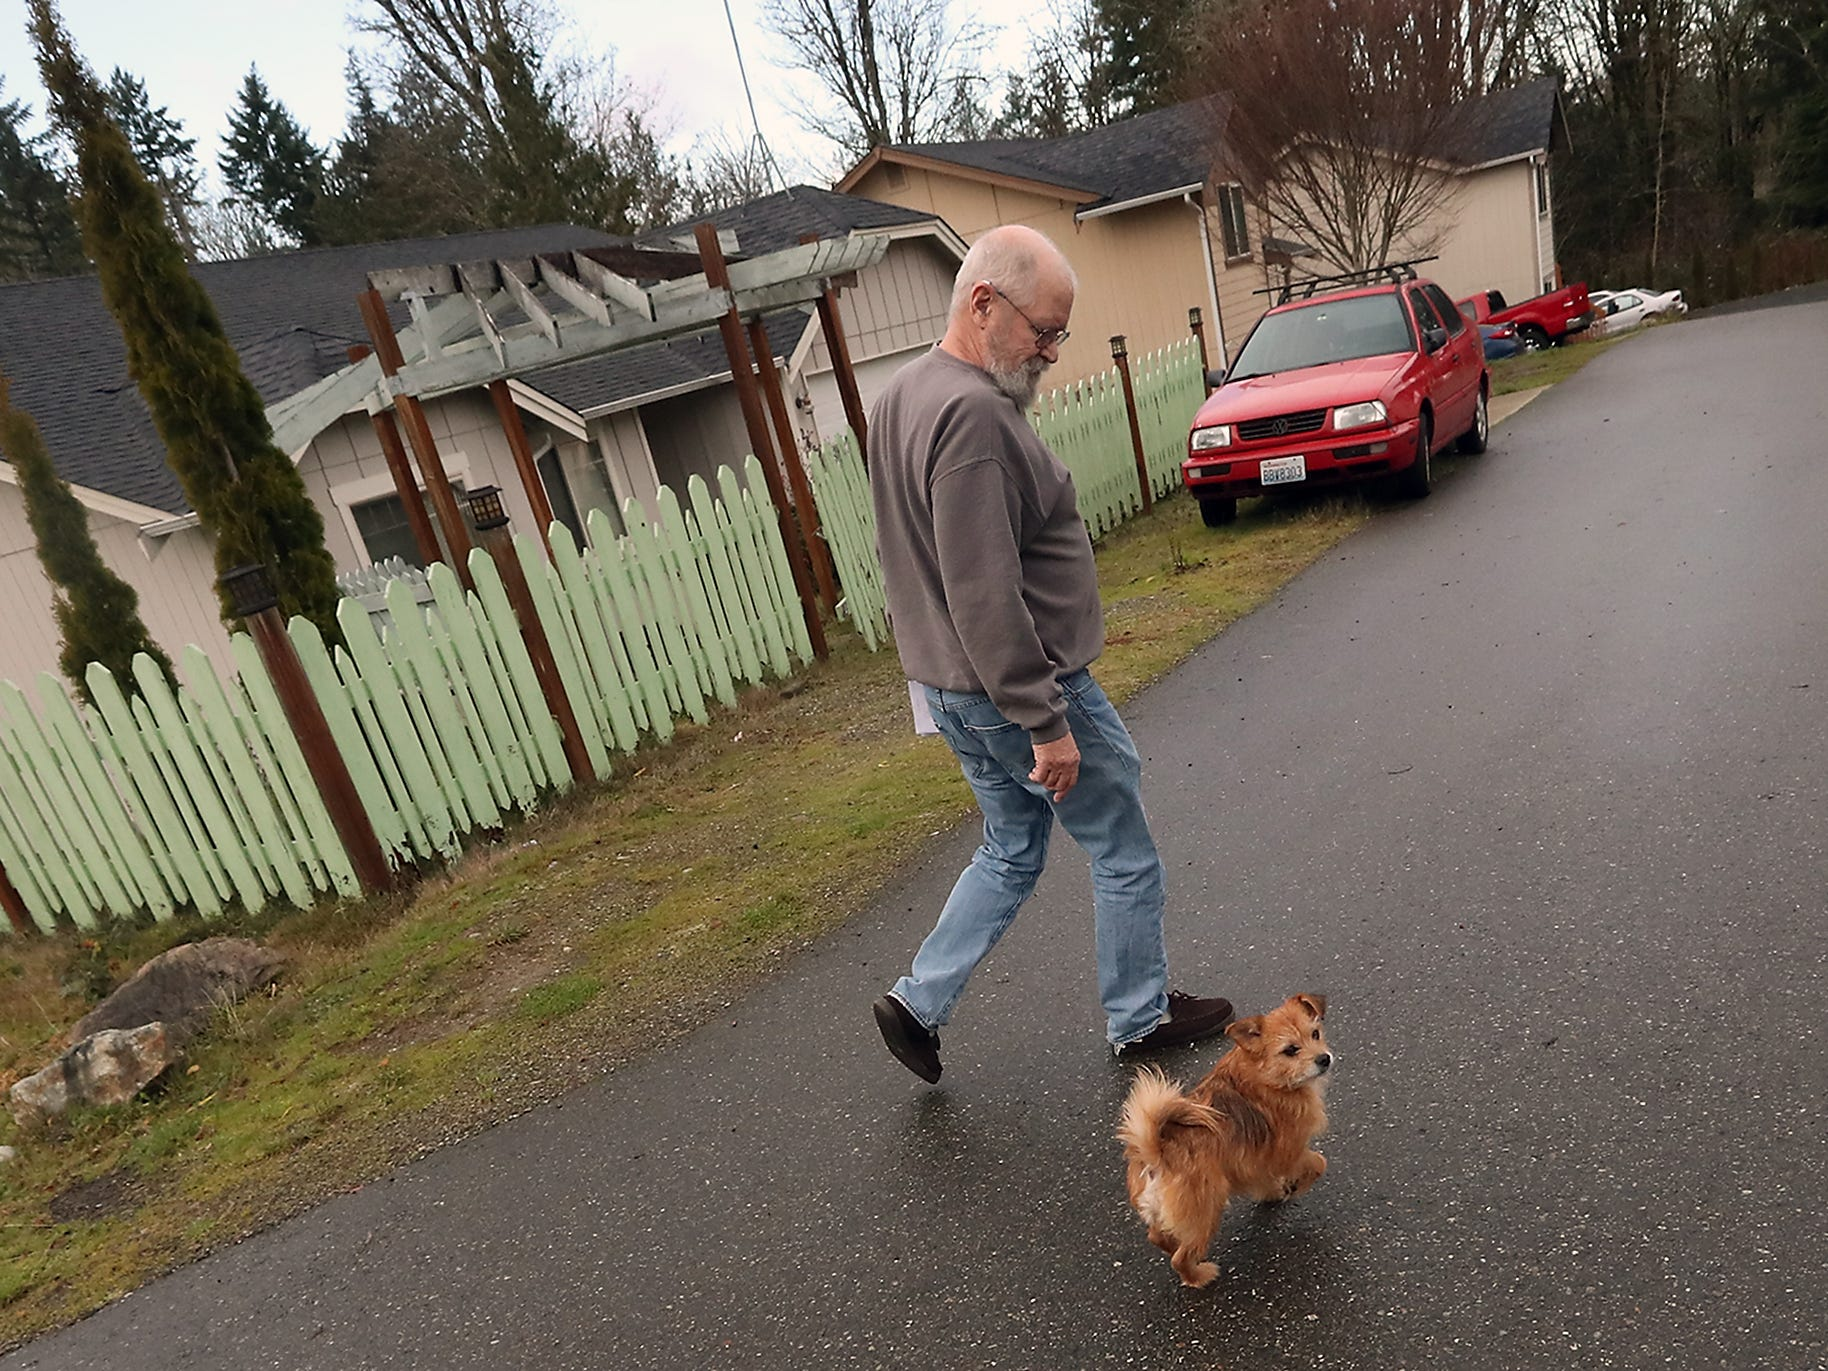 John O'Connor's dog Spanky walks next to him as they head back to  he house after getting their mail at their Port Orchard home on Thursday, December 20, 2018.